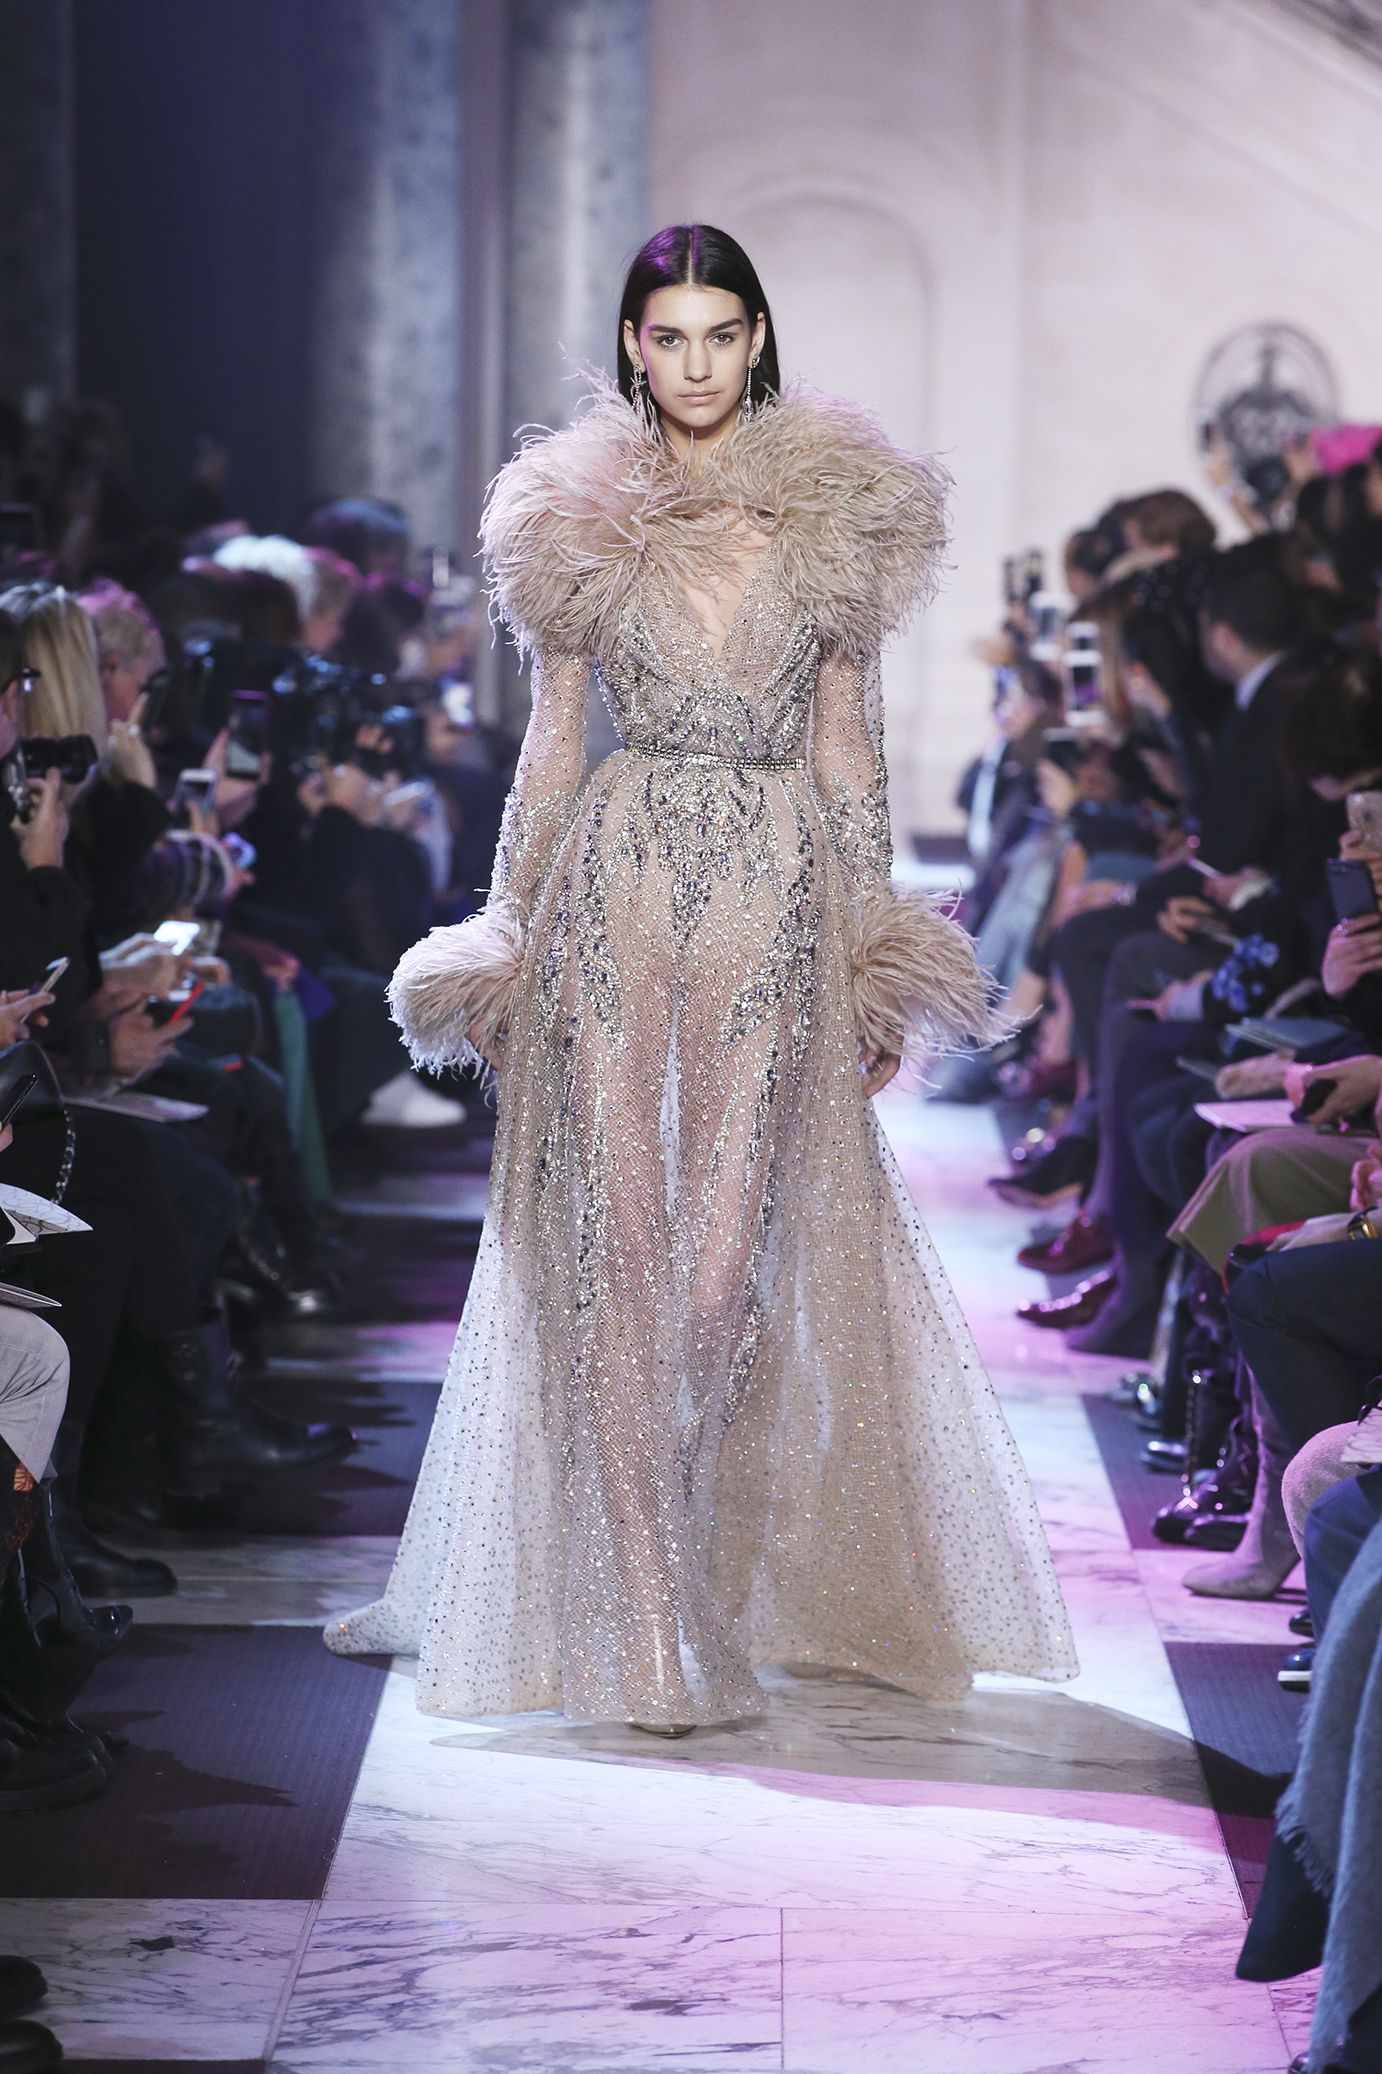 ELIE SAAB Haute Couture Spring Summer Fashion in